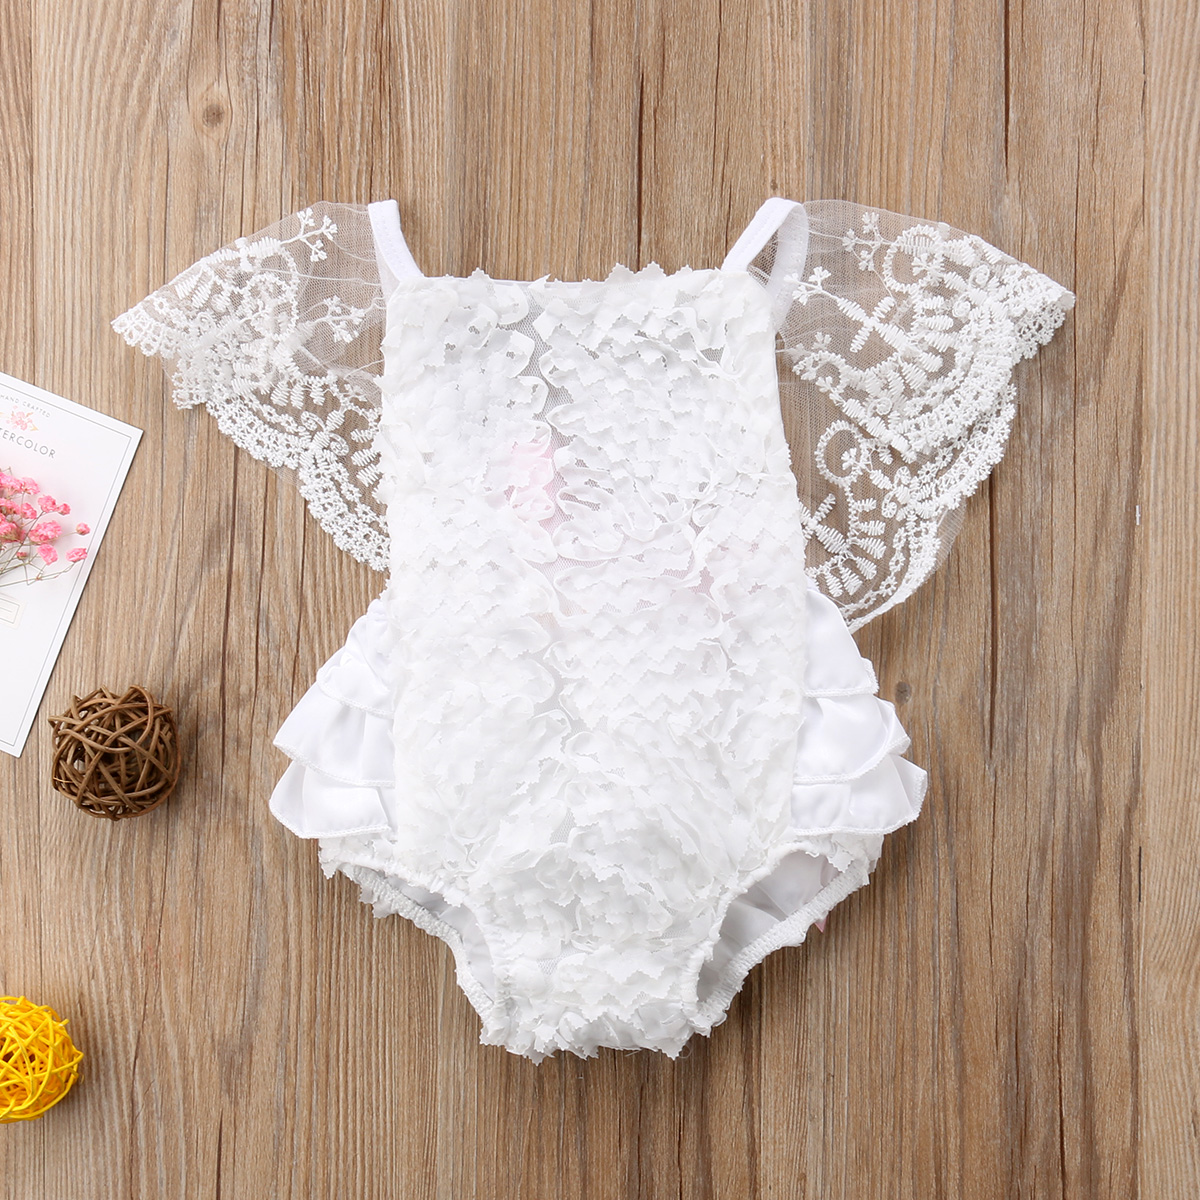 Solid Lace Short Sleeve Ruffled Rompers For Baby Girl